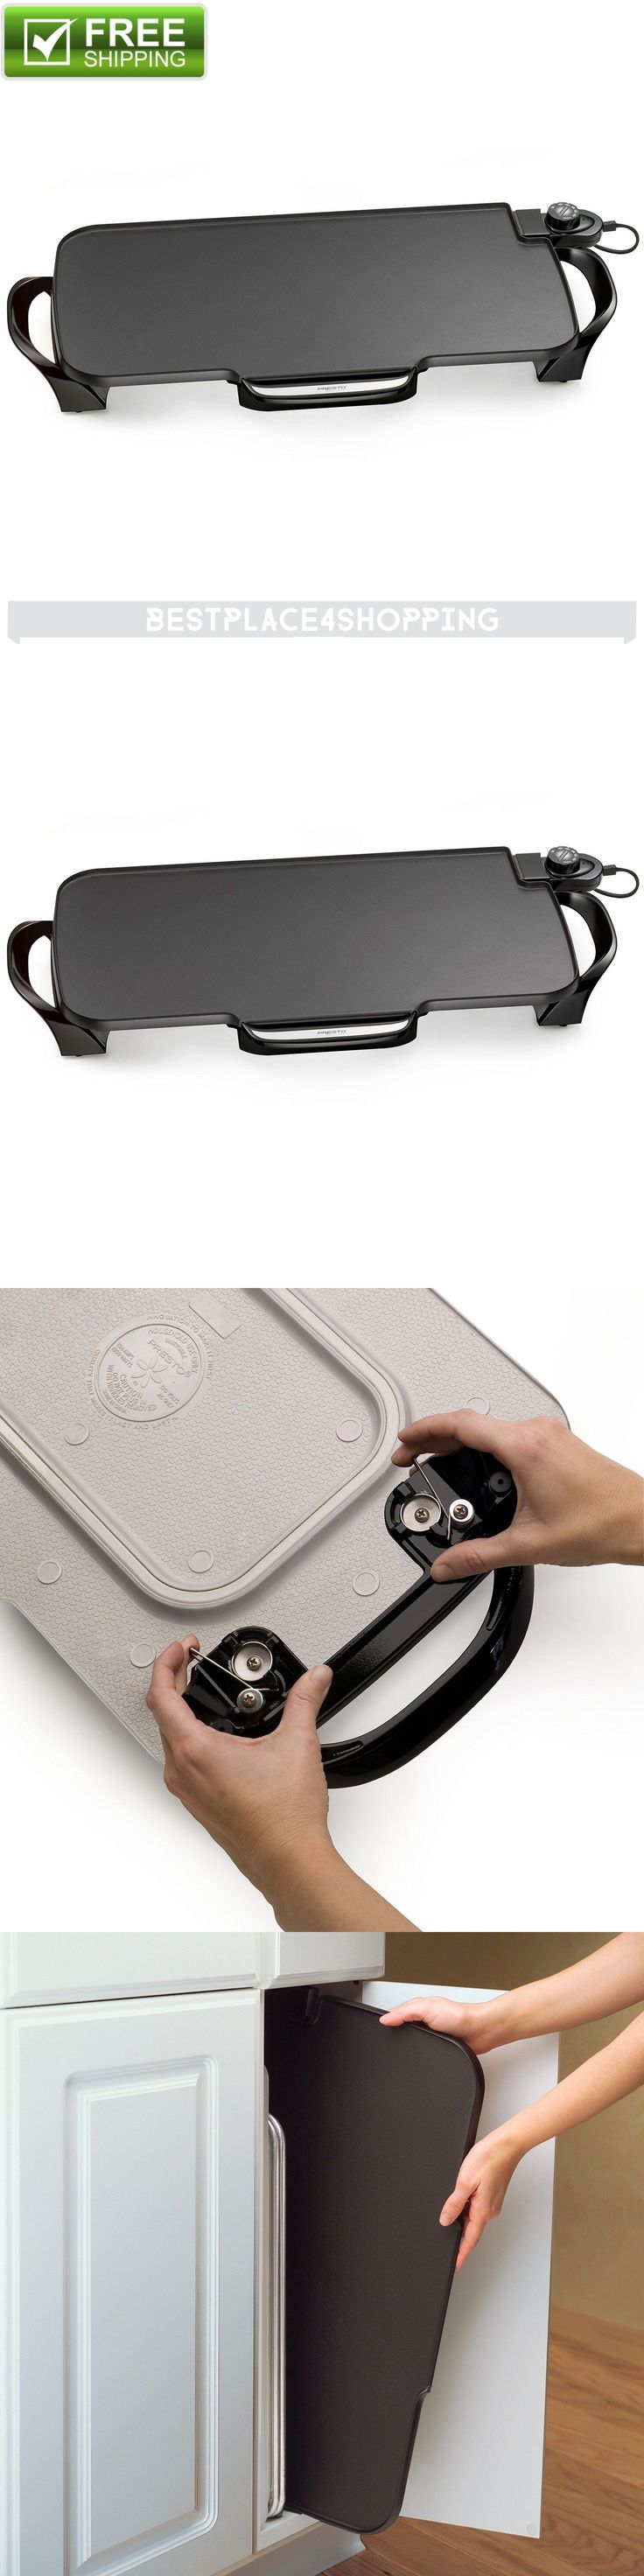 Grills and Griddles 20675: Electric Korean Bbq Samgyupsal Table Top Grill Griddle Nonstick Indoor Smokeless -> BUY IT NOW ONLY: $47.49 on eBay!